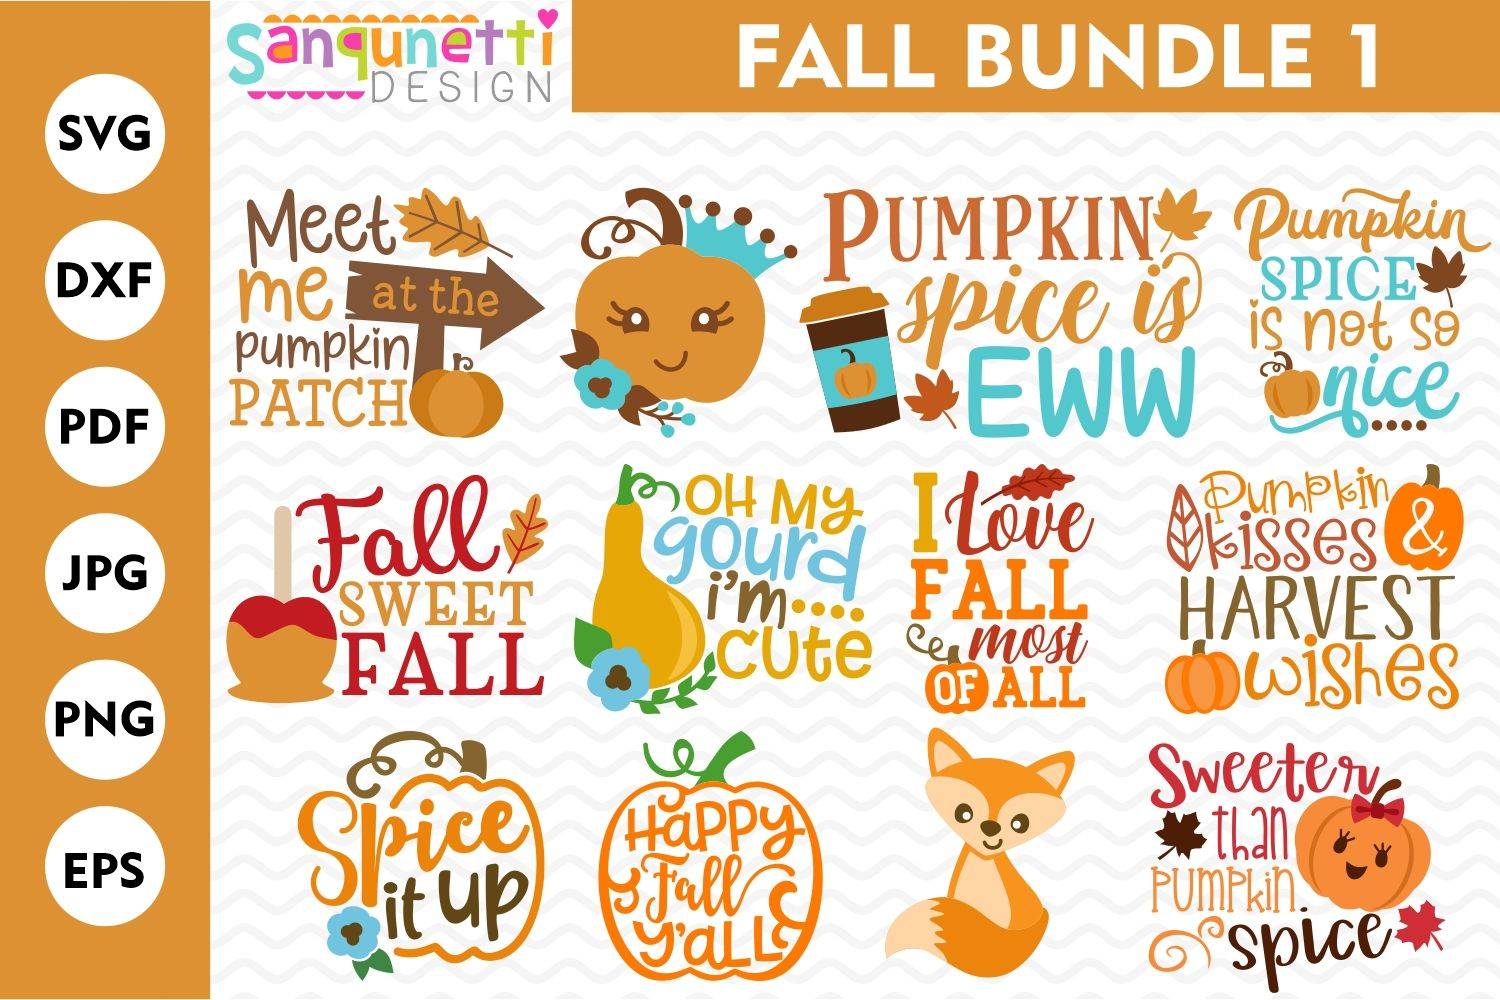 Fall SVG Bundle 1, autumn cut files From Our Designers